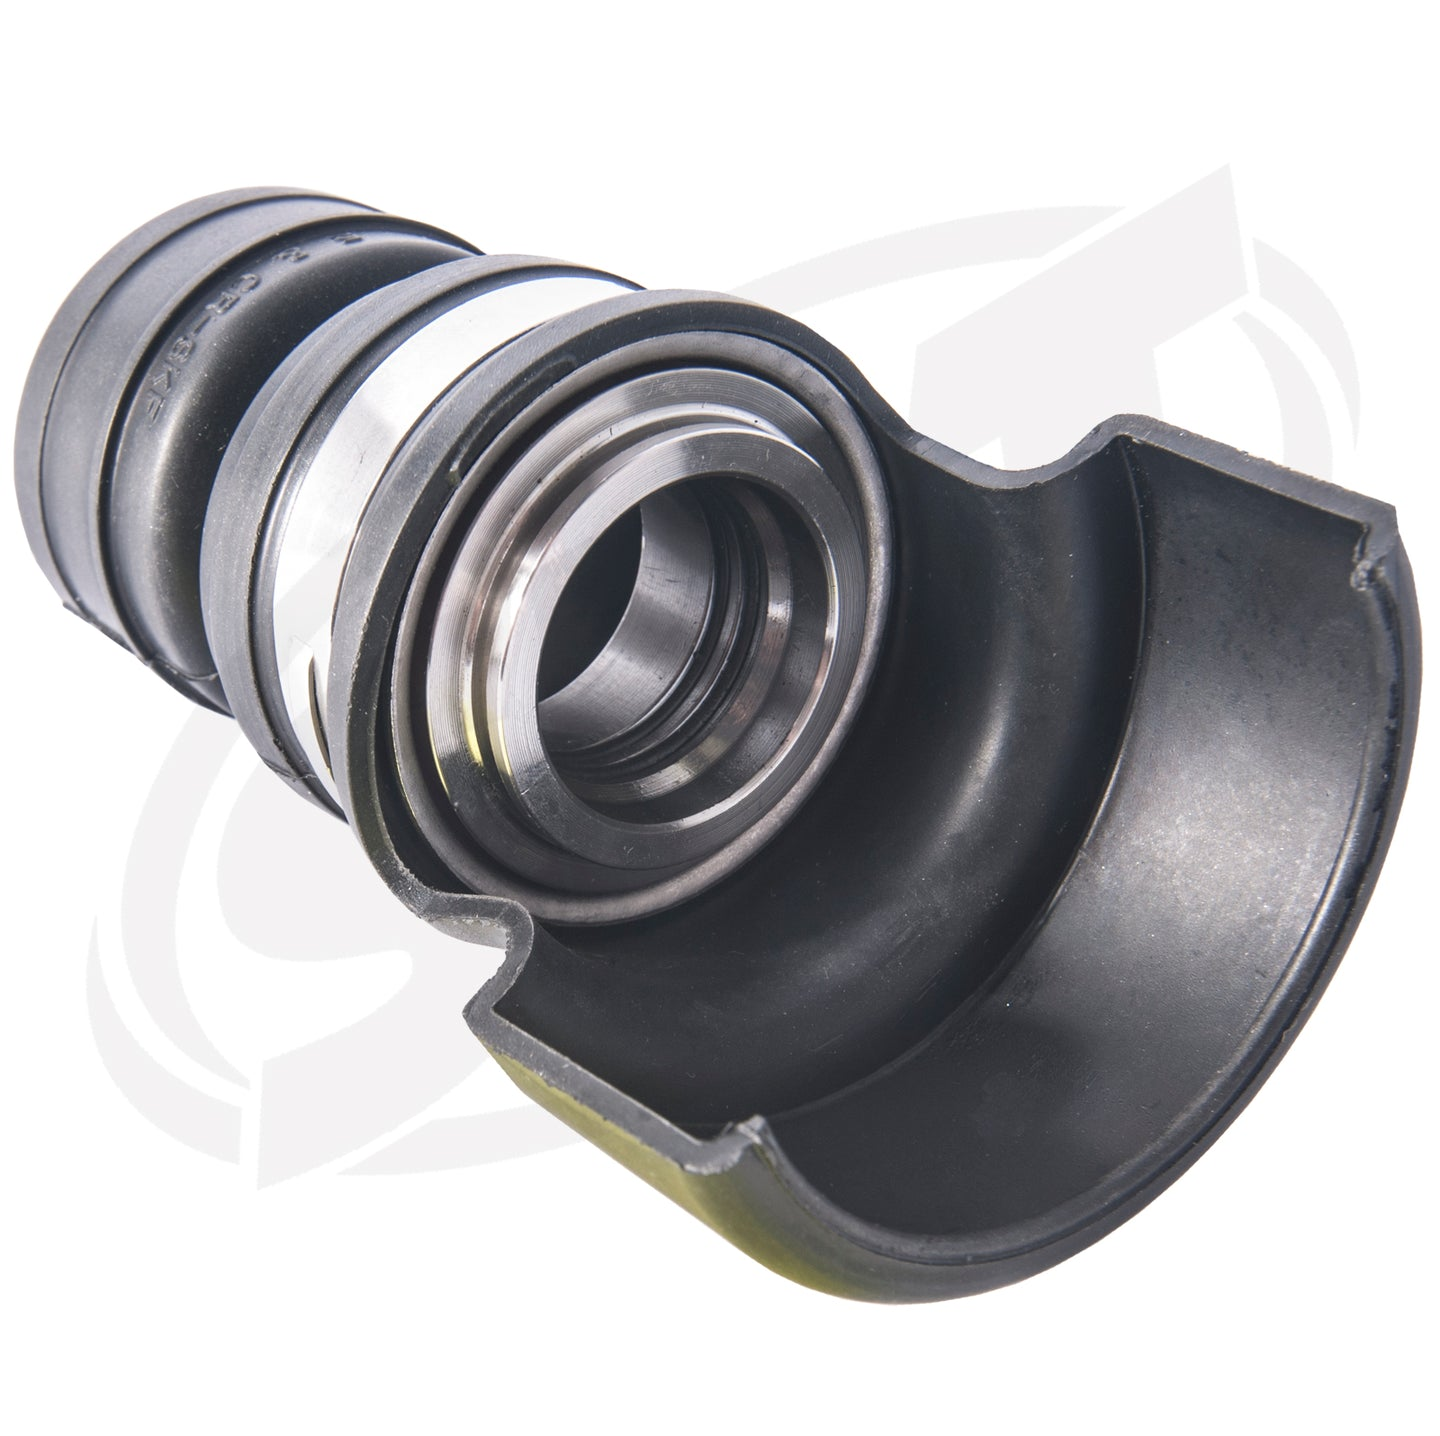 SBT Sea-Doo Ball Bearing with Bellow GTX /RXP /RXT /GTI /Wake /GTS /Sportster /Speedster /Challenger /Islandia /Utopia /SP 420832648